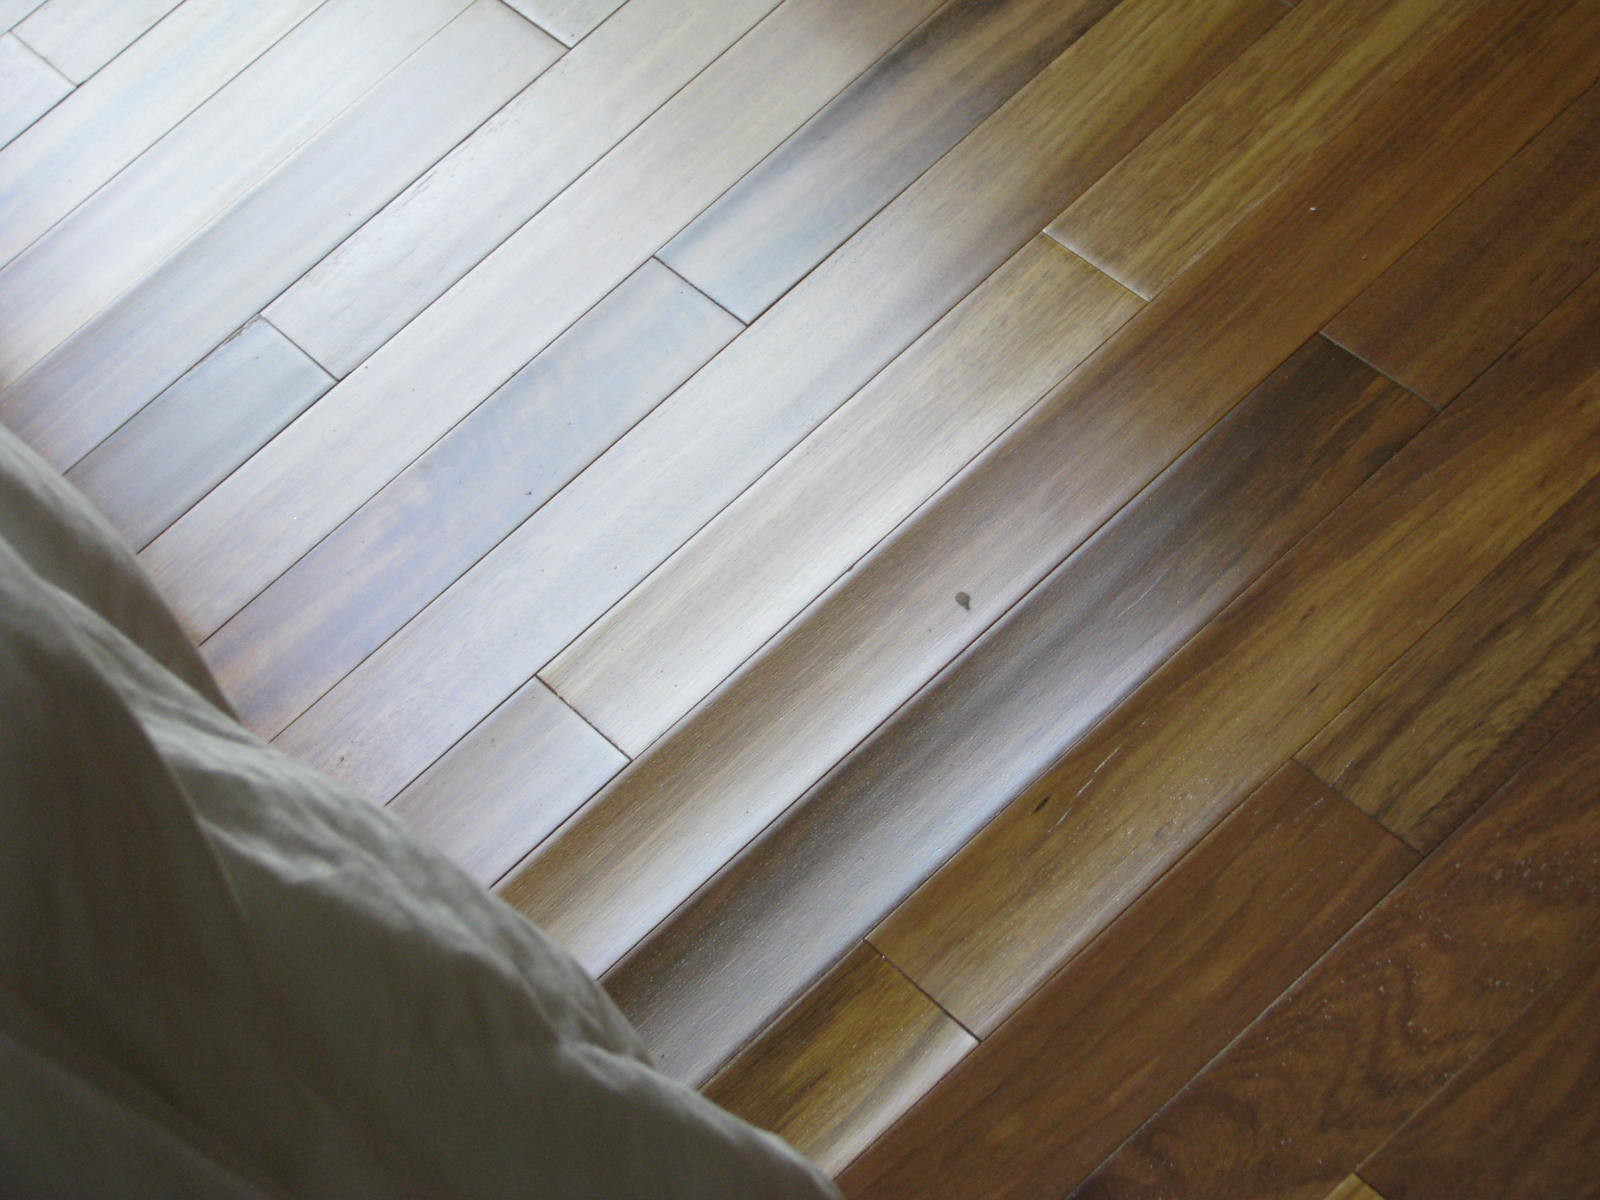 Summer Humidity How It Effects Your Hardwood Floors